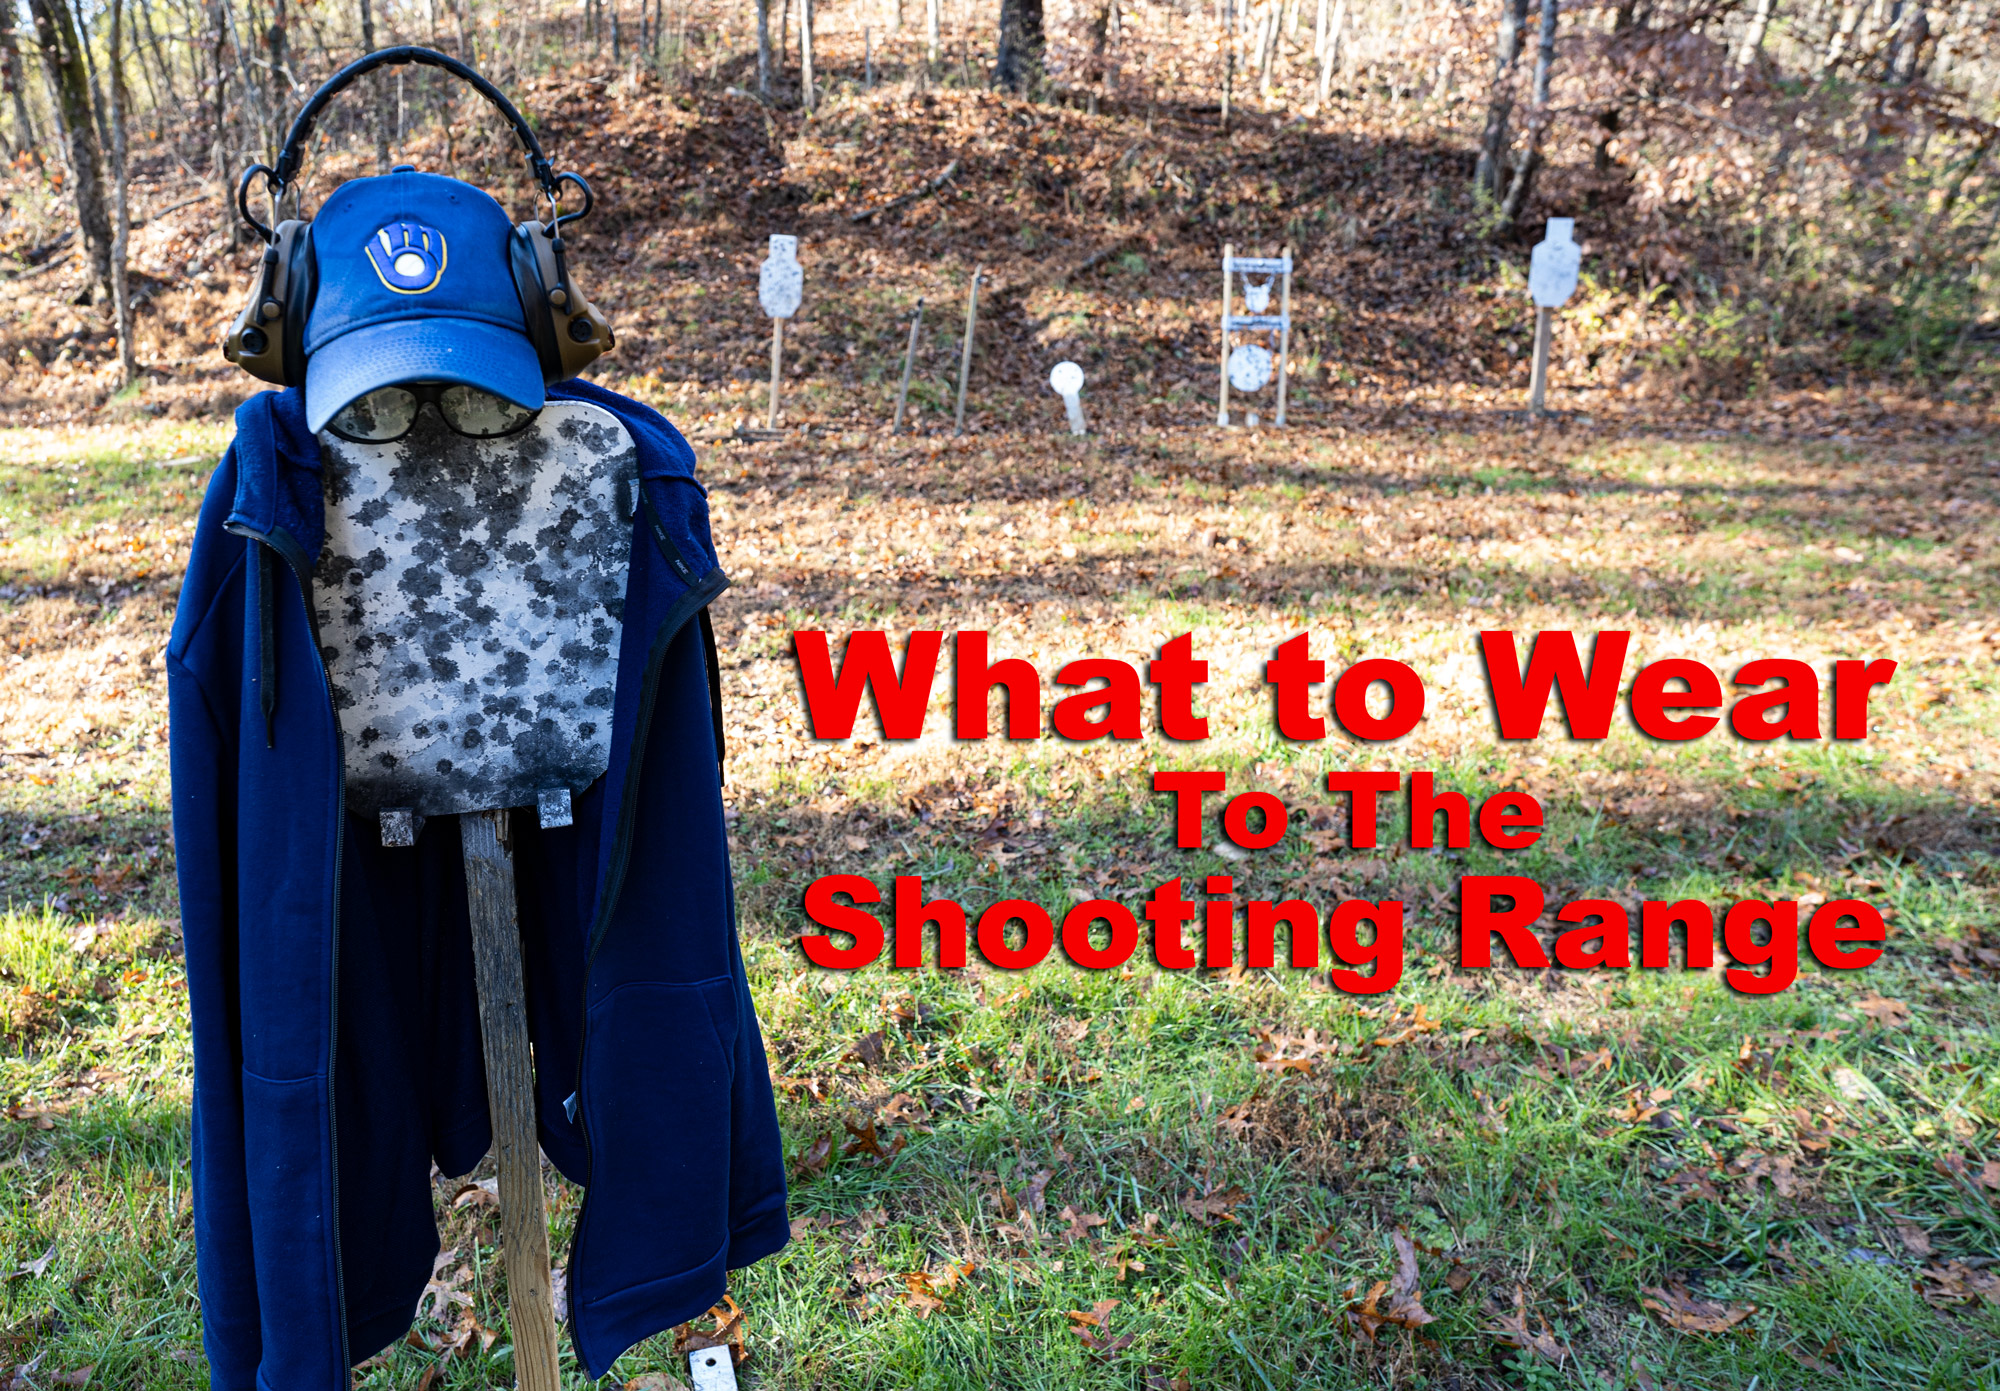 long sleeves, hat and other shooting range clothing at a range